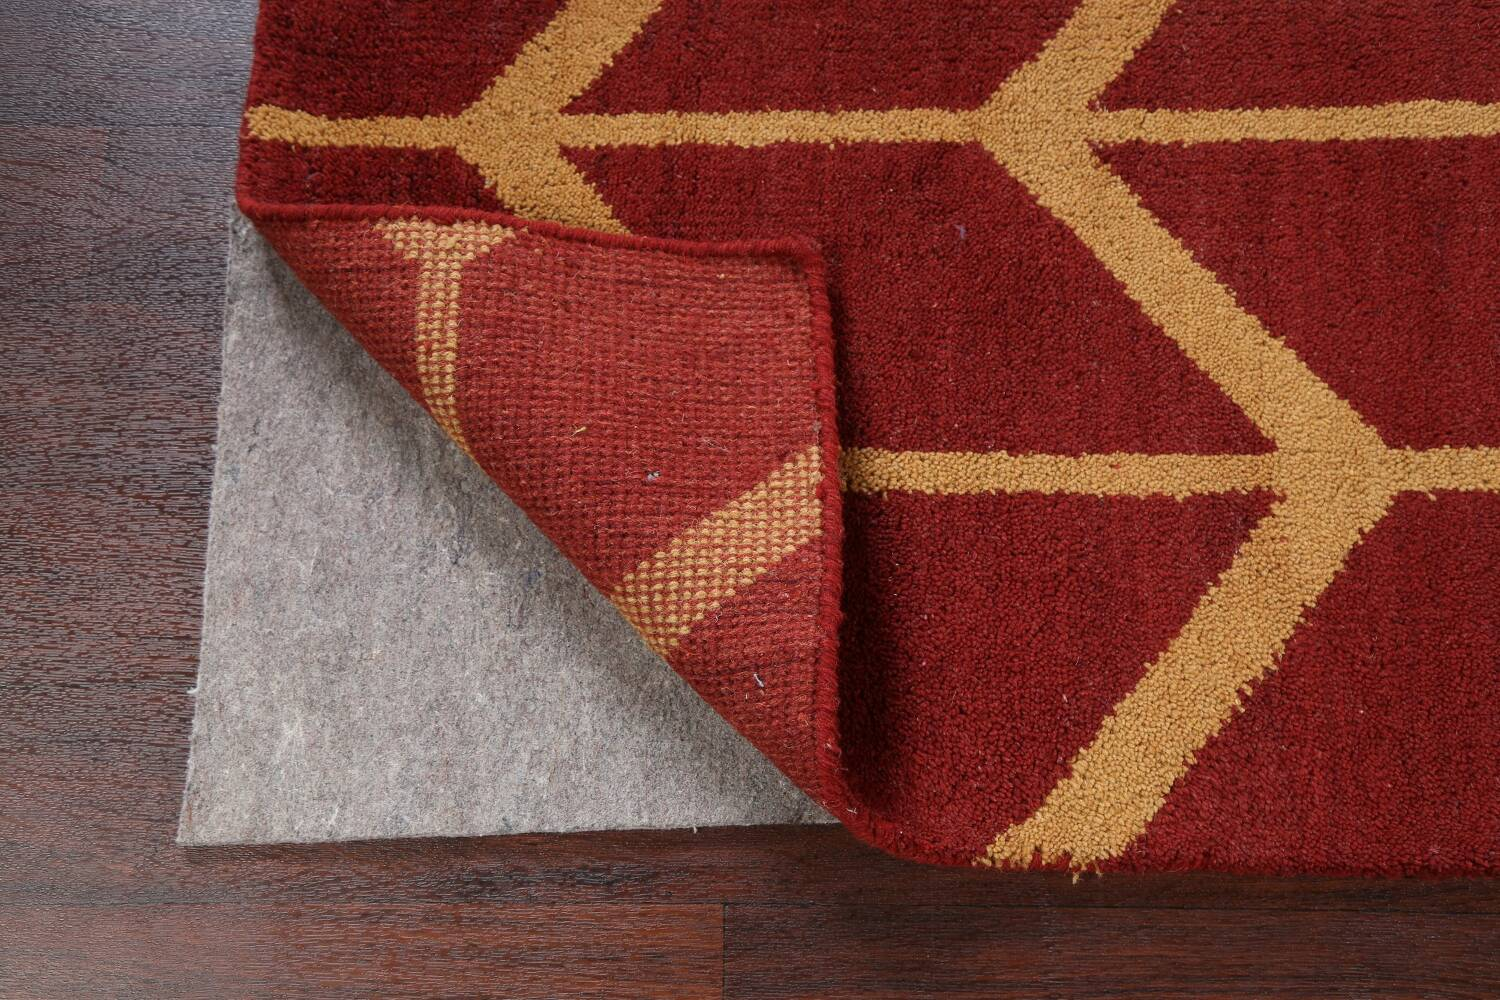 All-Over Moroccan Wool Area Rug 8x10 image 7